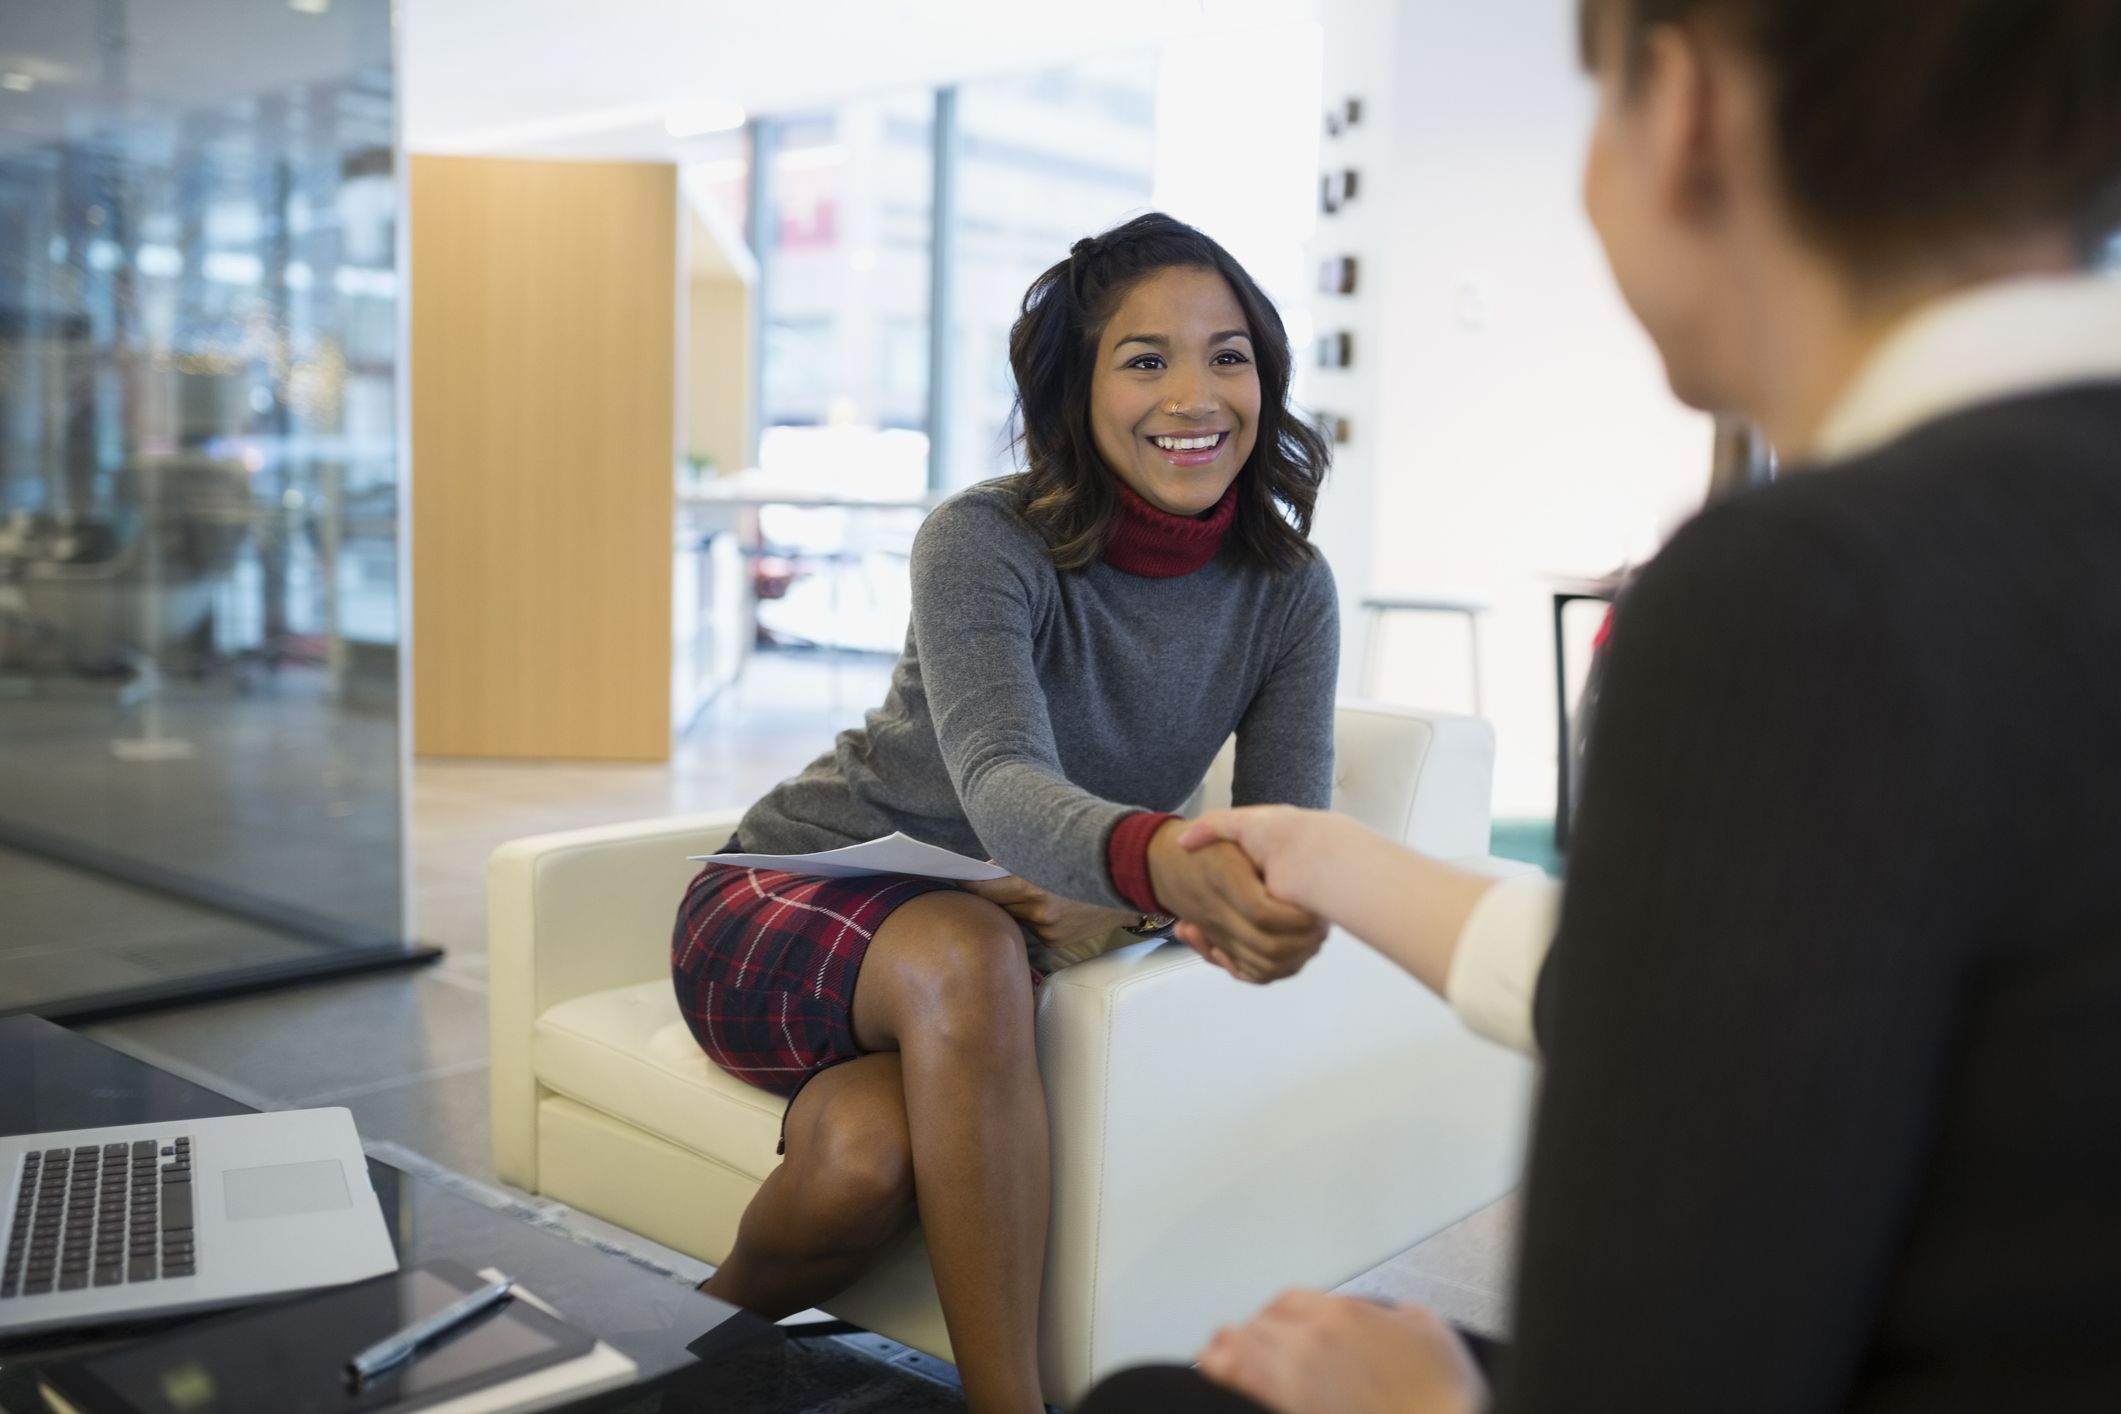 Should You Get Another Job Offer to Bump Up Your Salary?